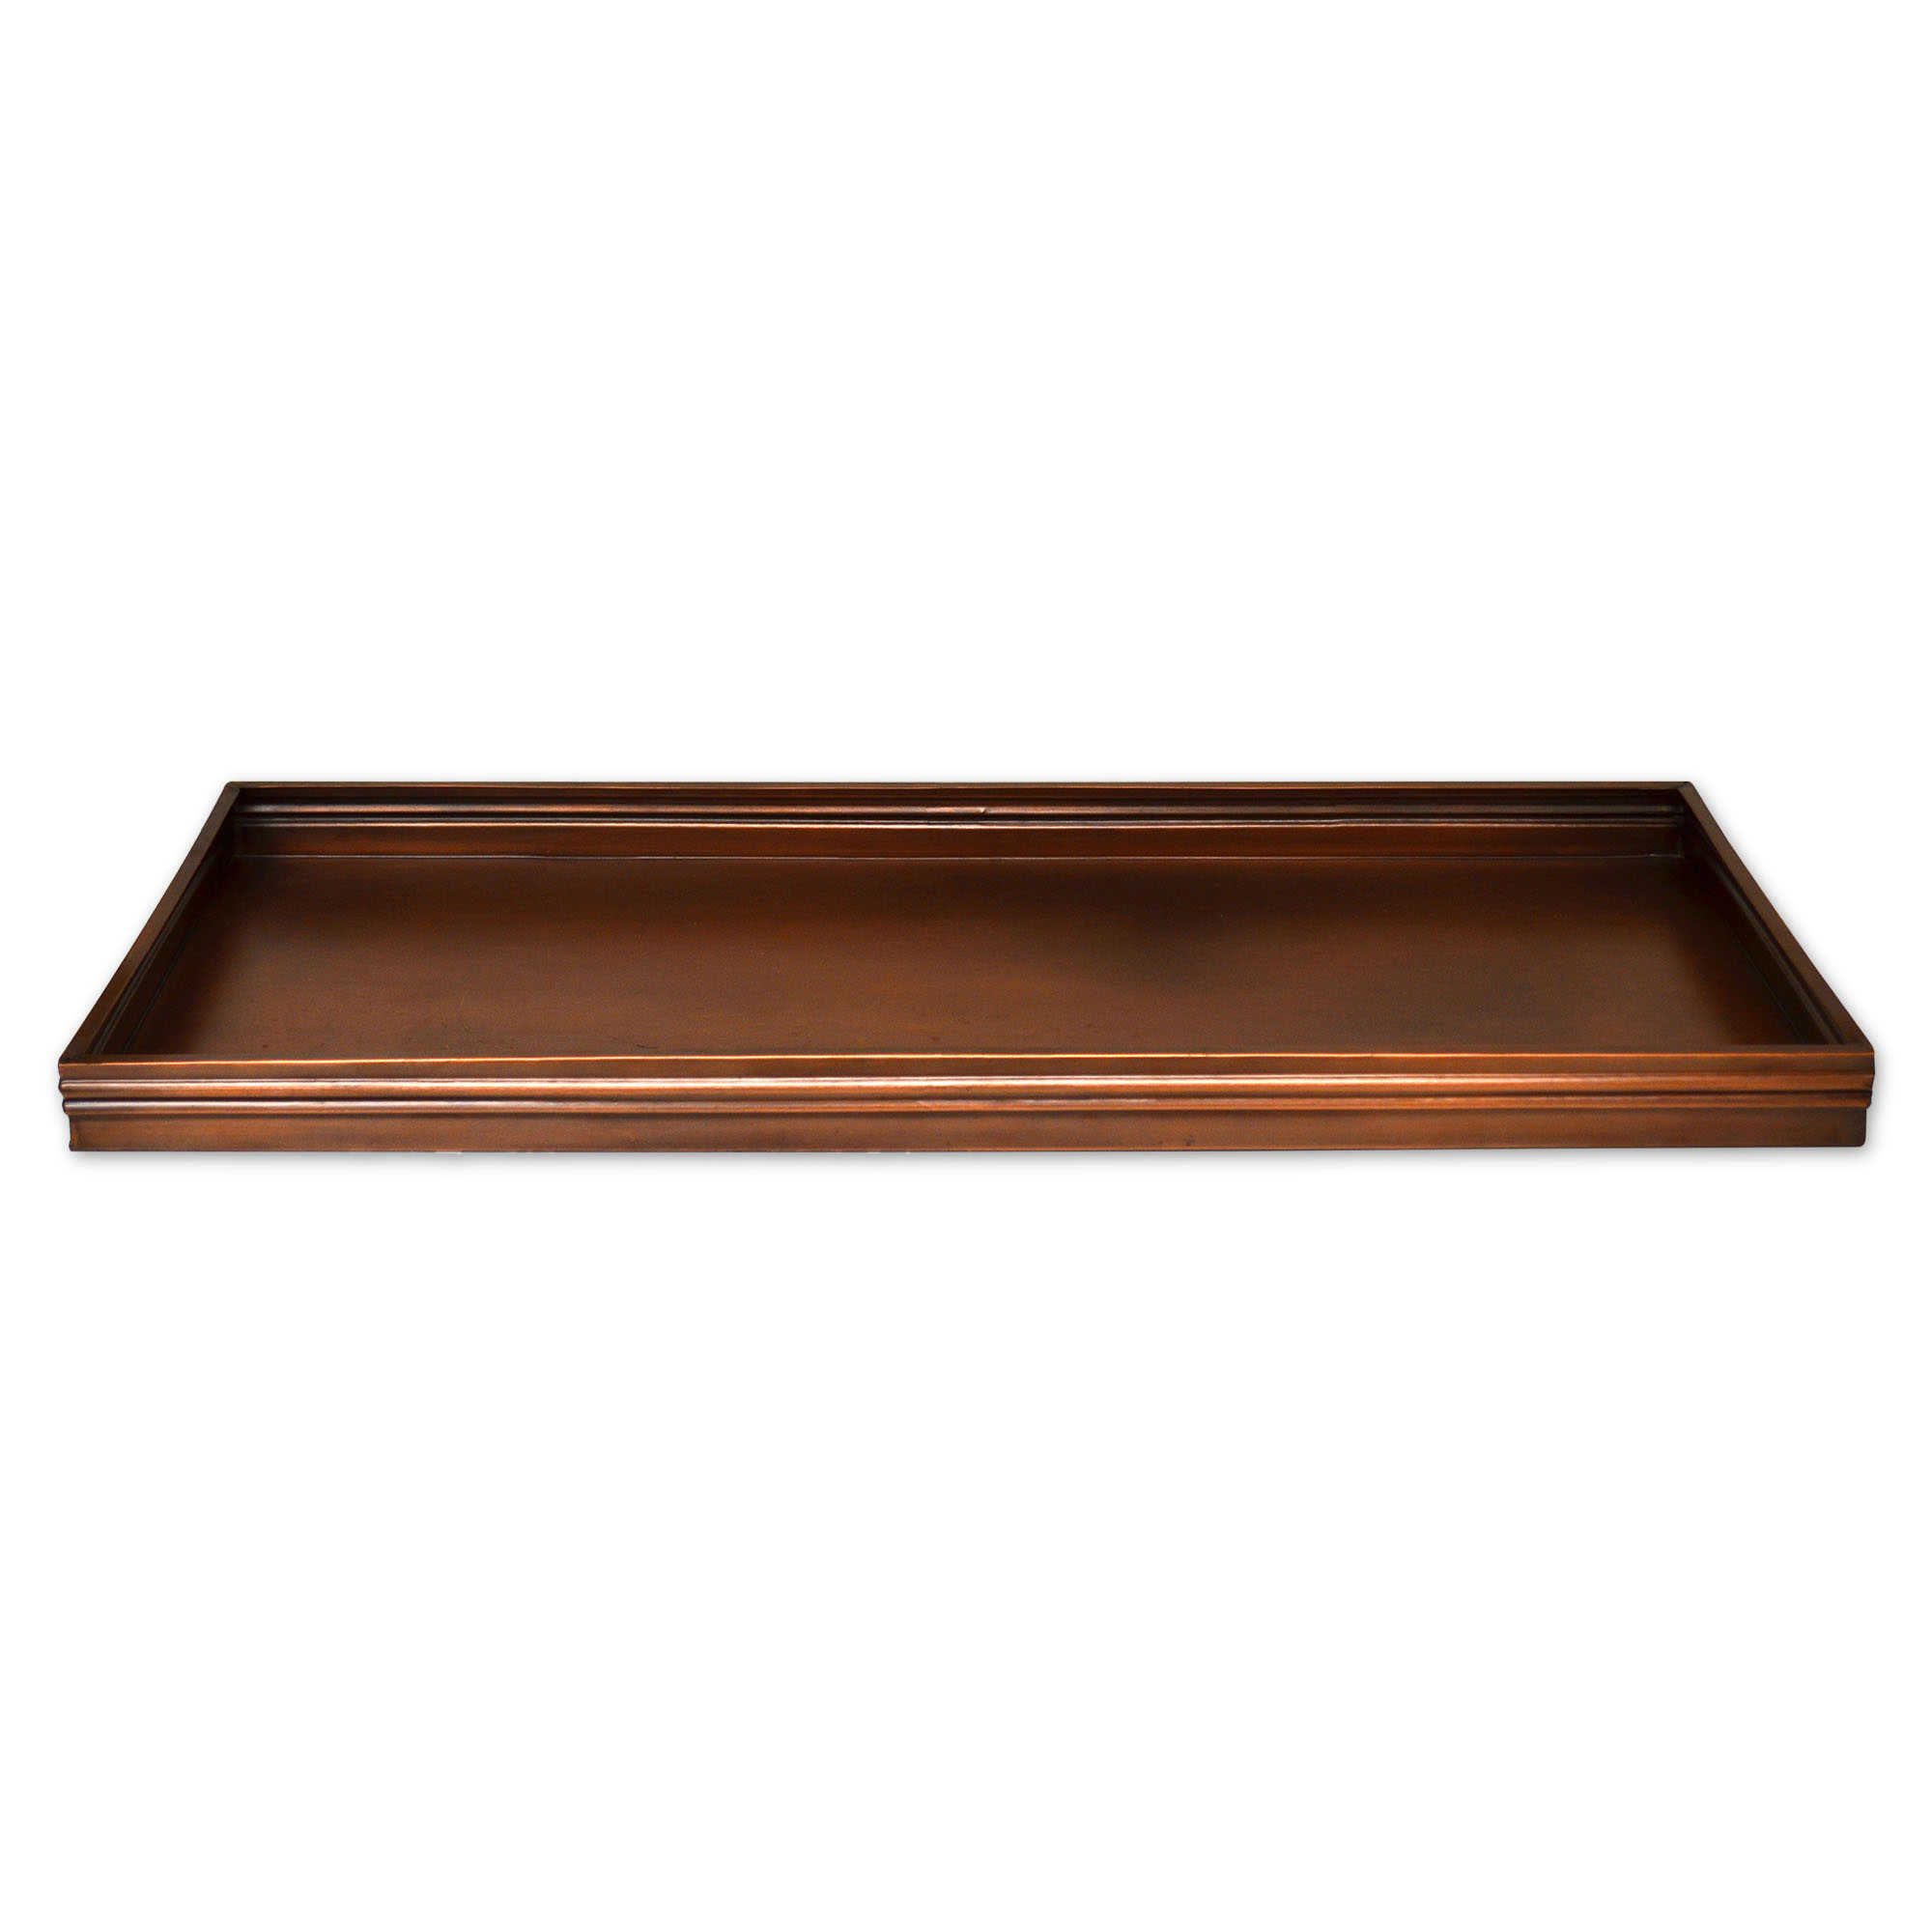 34 Inch X 14 Inch Solid Copper Boot Tray Boot Tray Copper